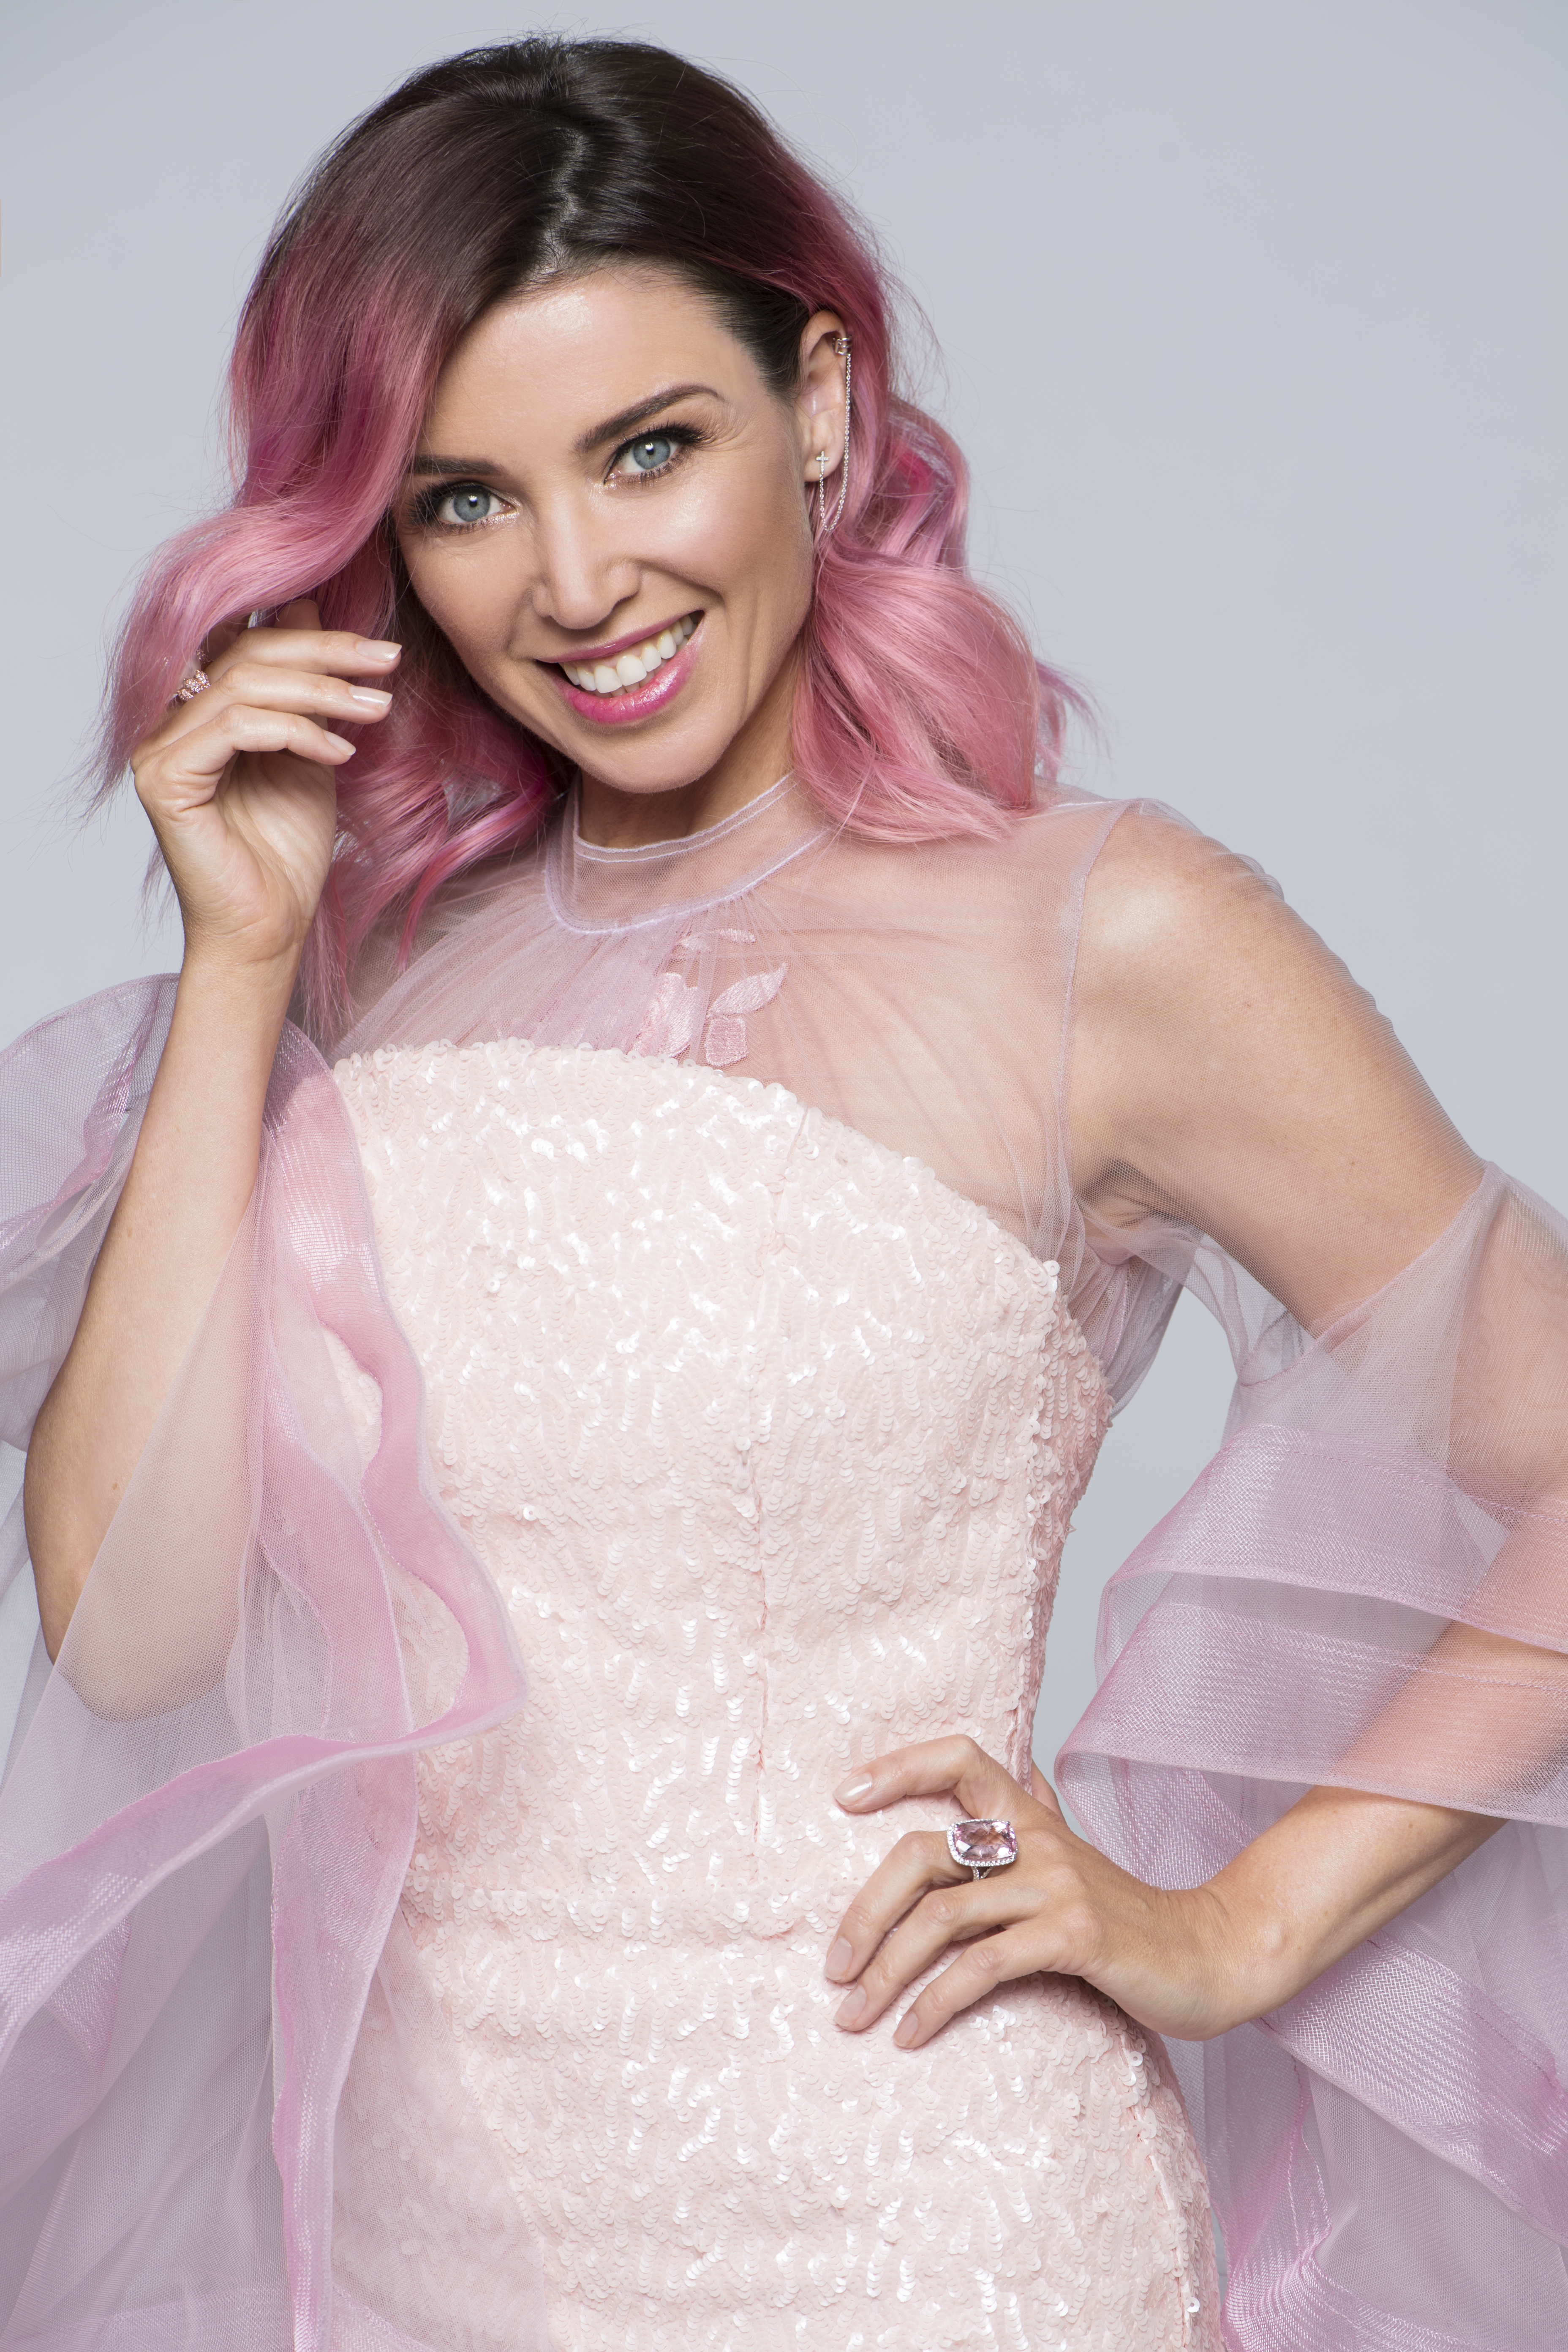 <p>Just when we were getting used to pop star and TV personality Dannii Minogue's honey streaked bob, the famous sibling has debuted a hot pink look.</p>